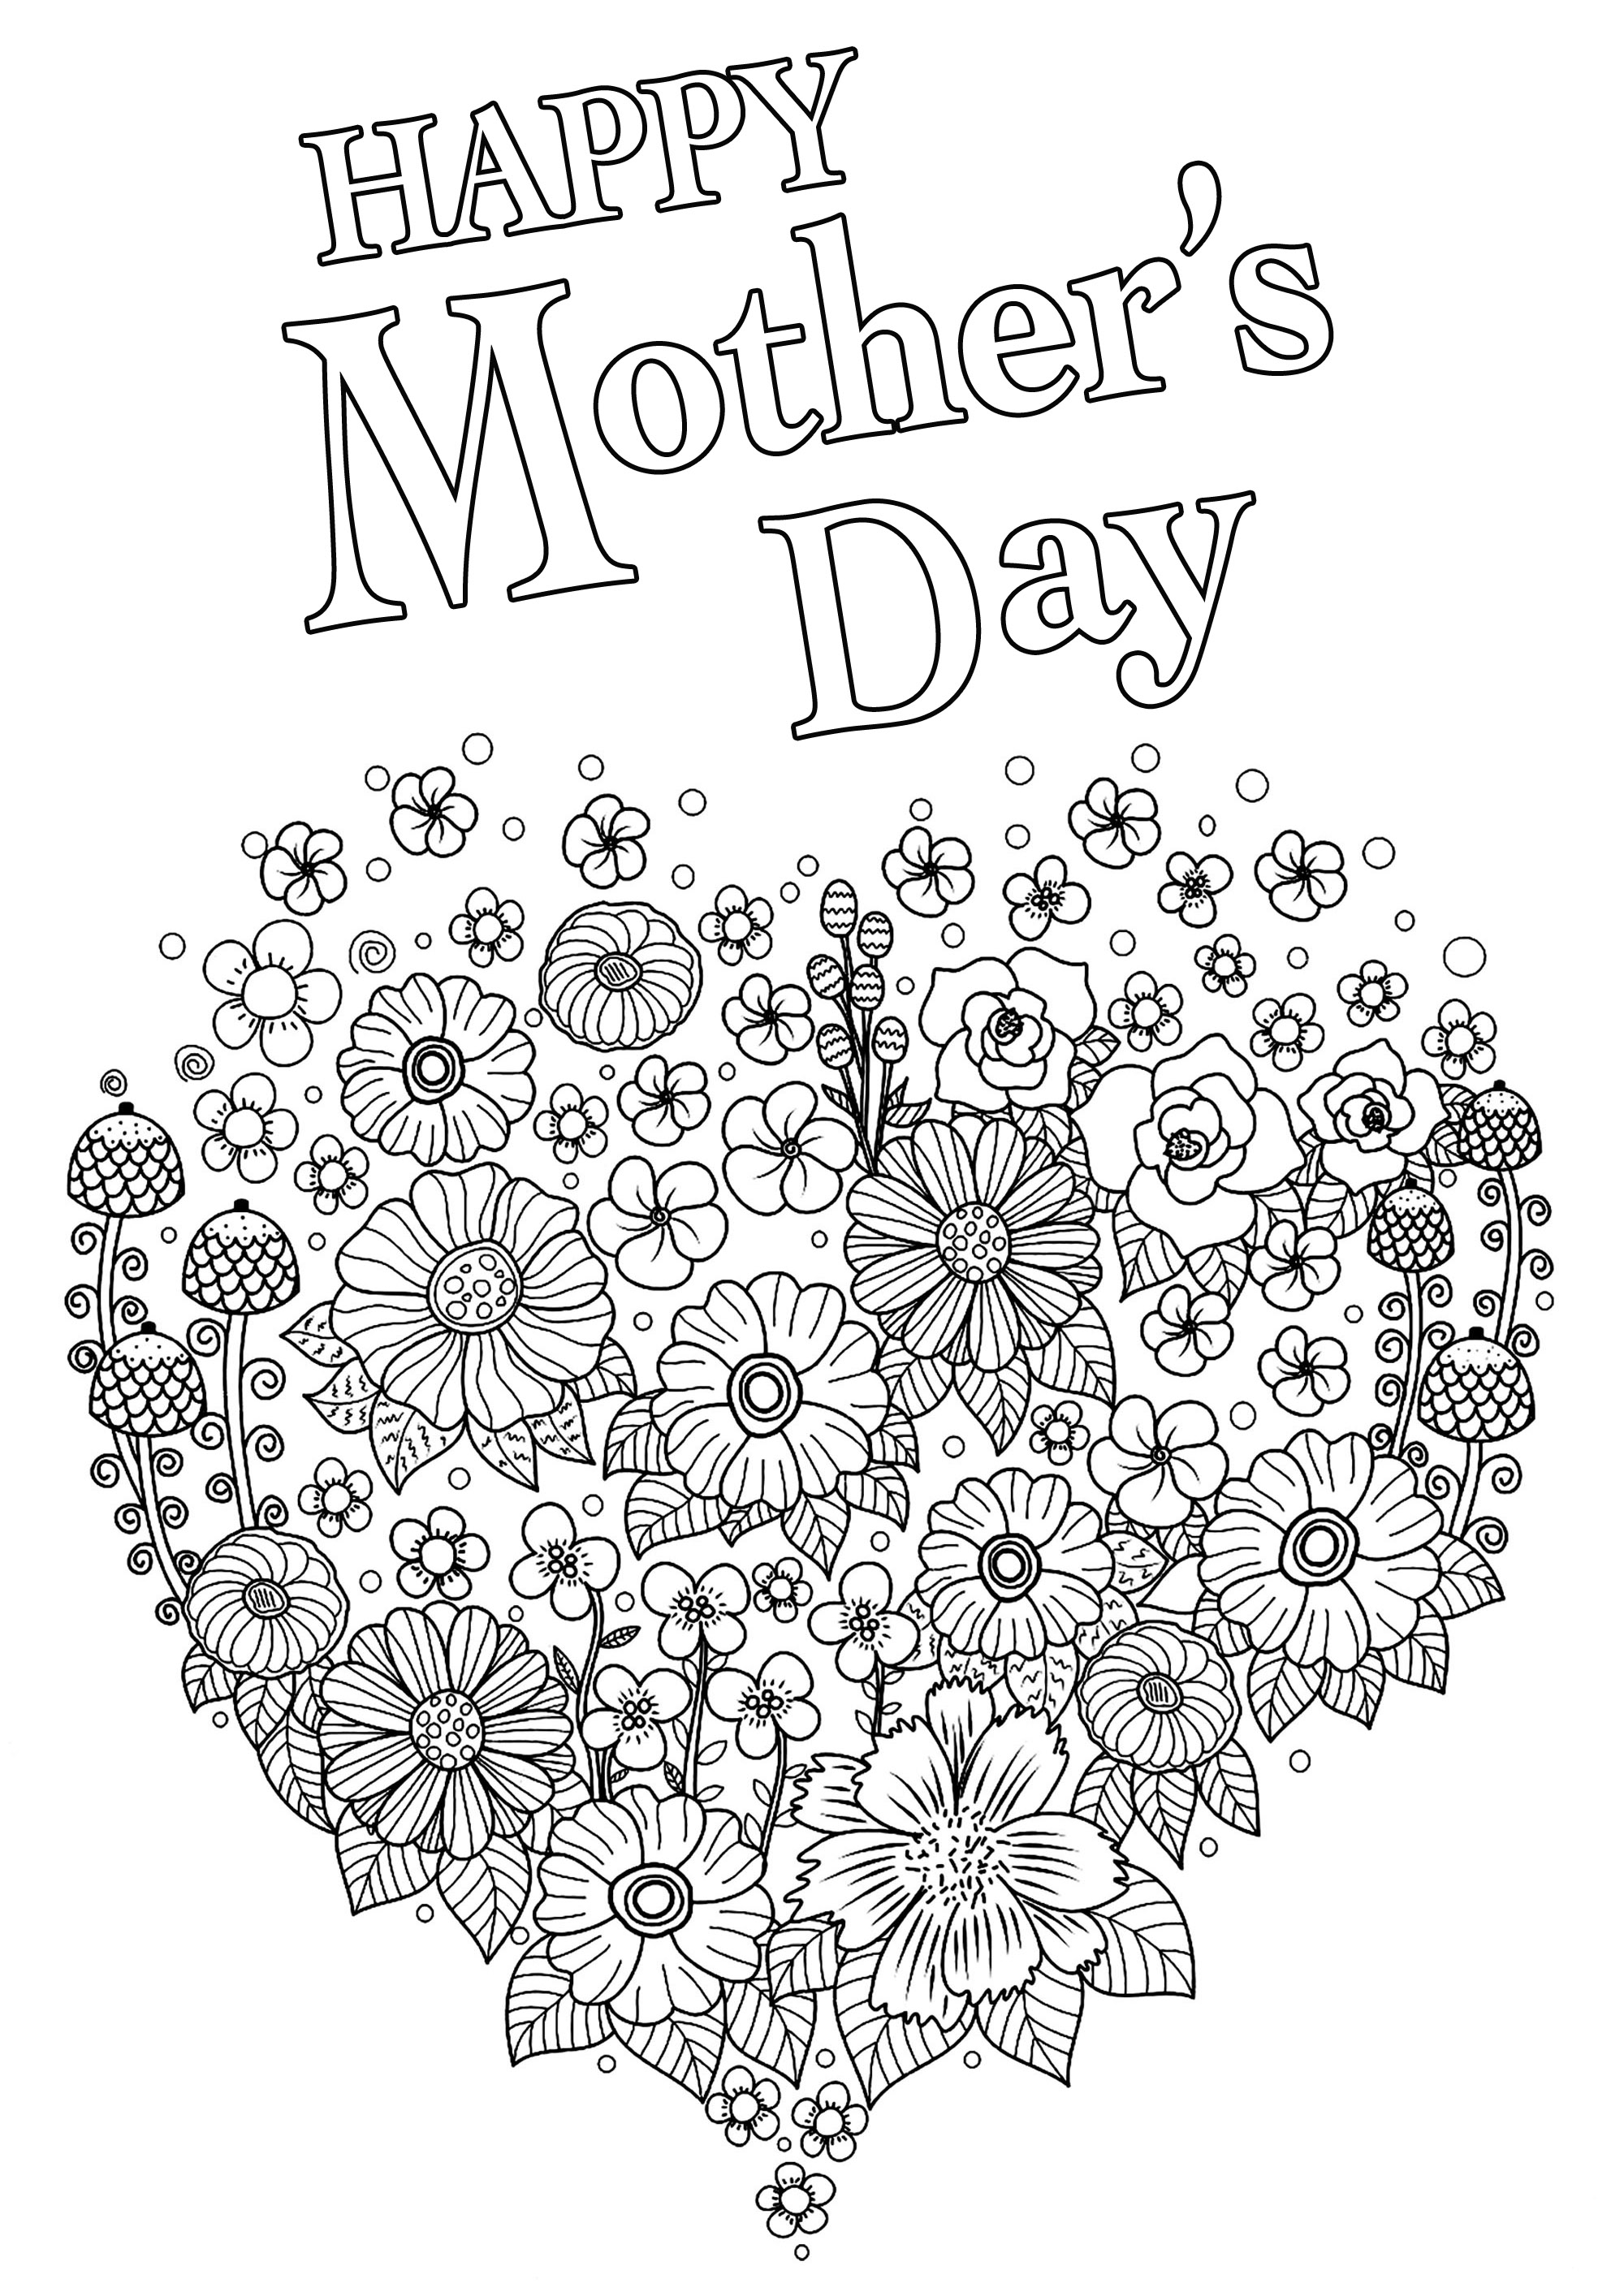 Happy Mother's day coloring page : Heart full of various flowers